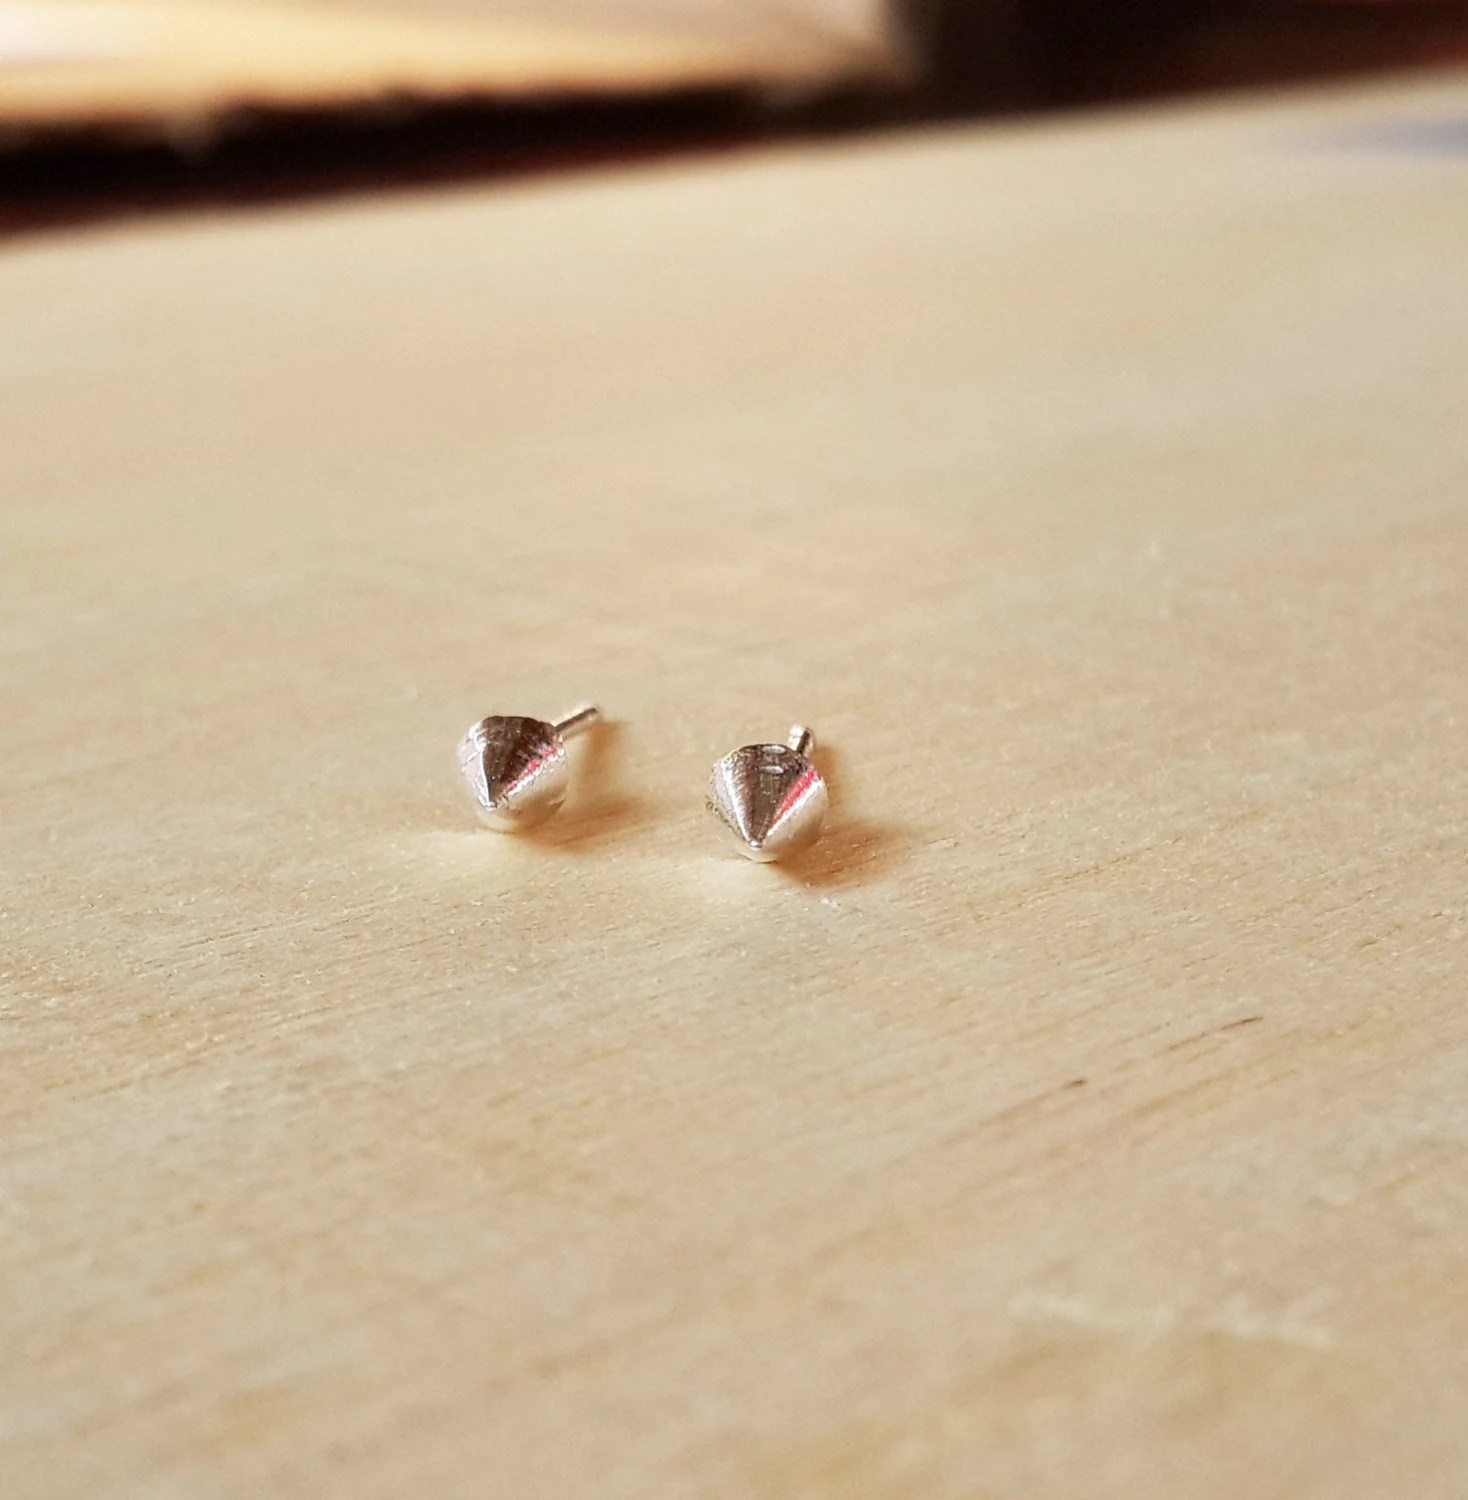 Small Spike Stud earring Spike earrings by Happinesssilver